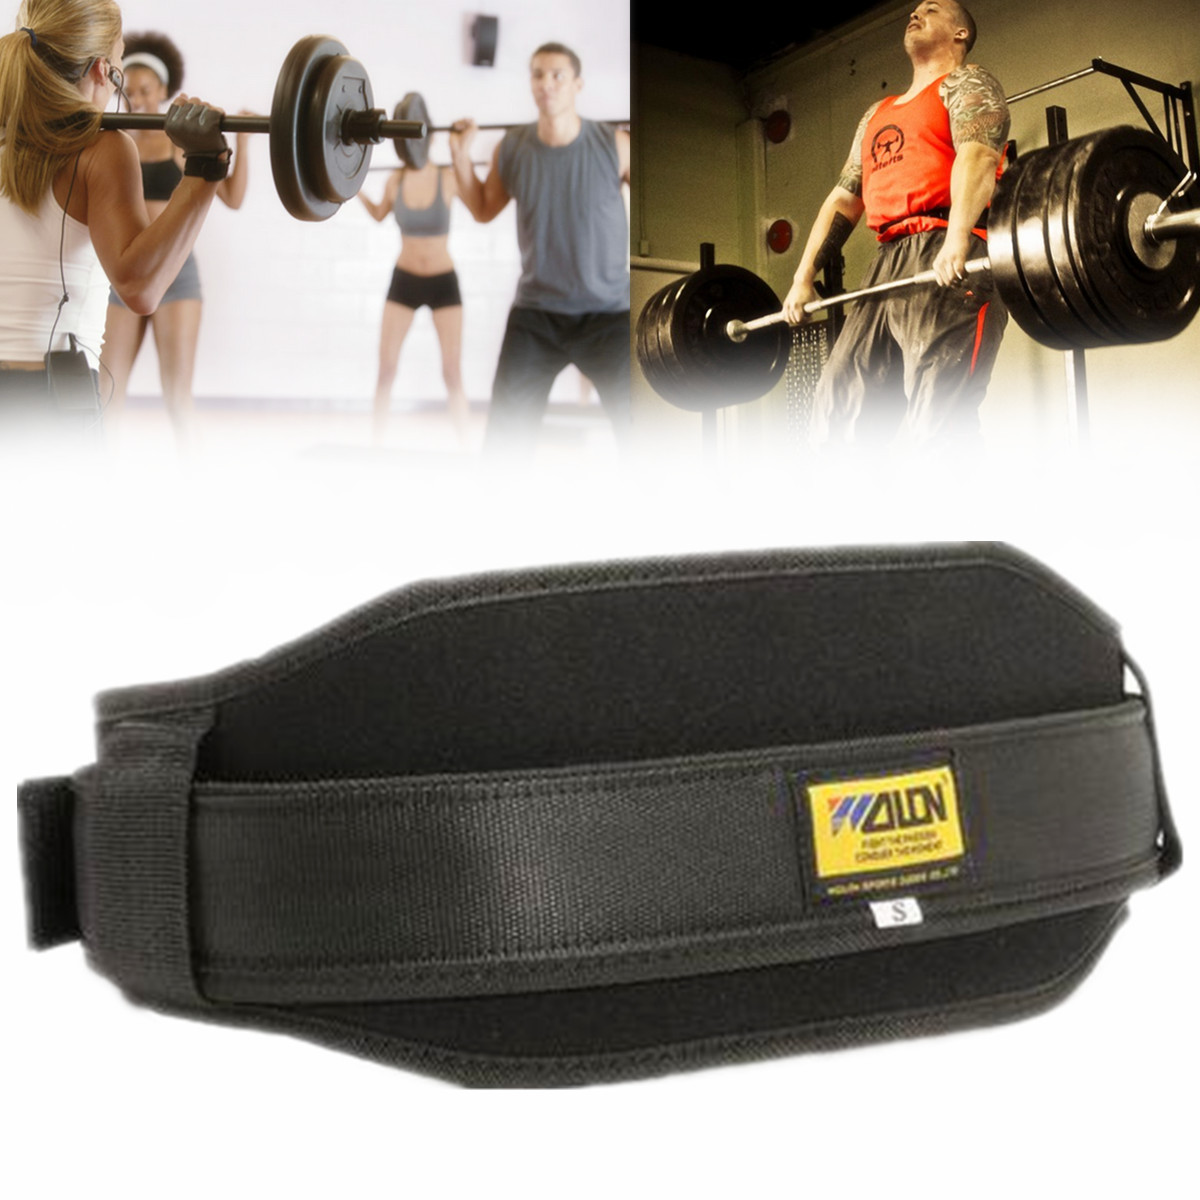 Workout Weight Lifting Belt for Men and Women – Lightweight for Comfortable Back Support - Ideal for Squat, Powerlifting, Deadlift Training